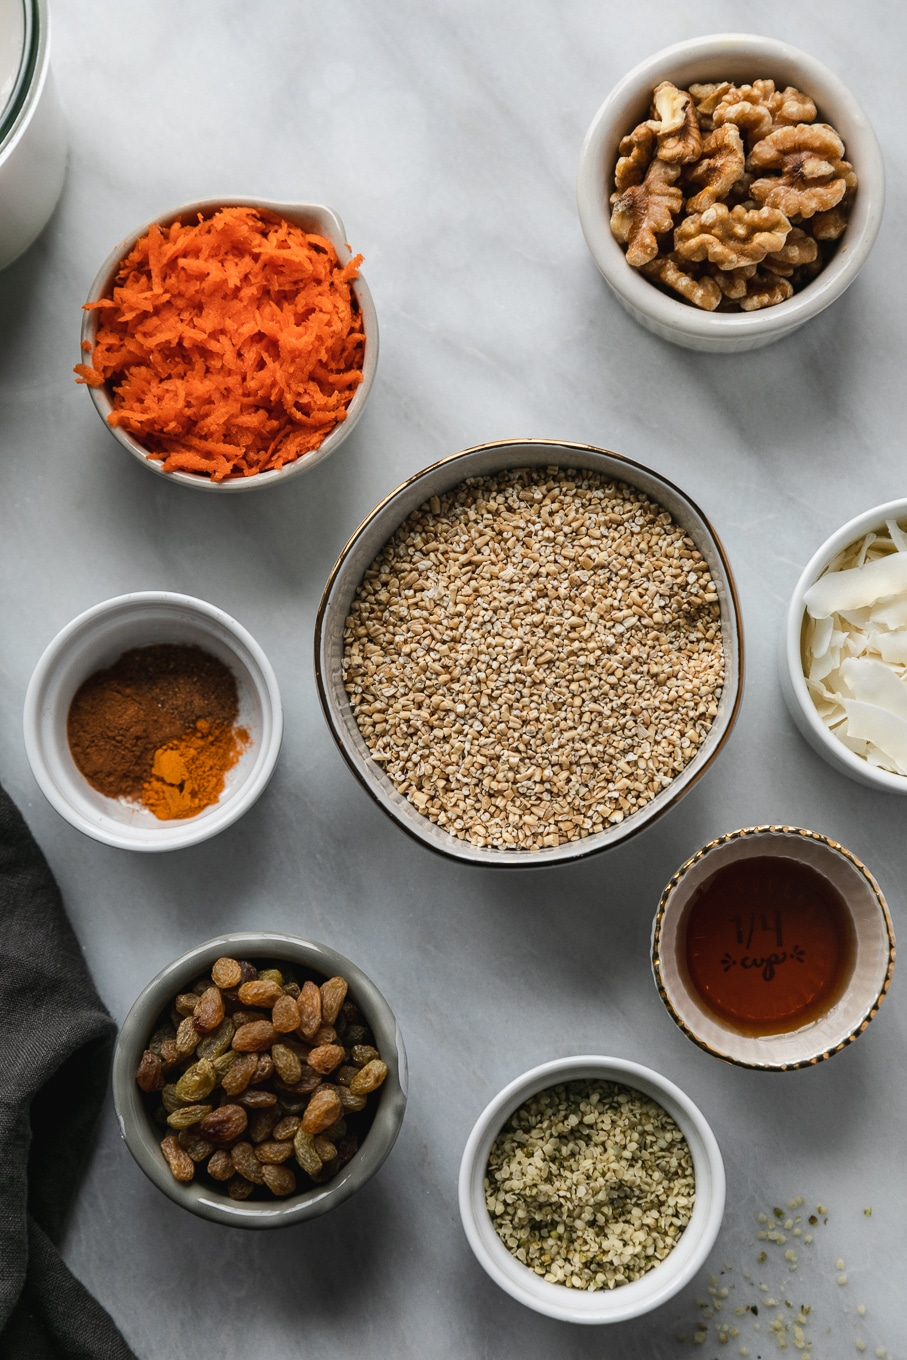 Overhead shot of a bowl of steel cut oats surrounded by ramekins of grated carrots, spices, golden raisins, hemp seeds, maple syrup, coconut flakes, and walnuts